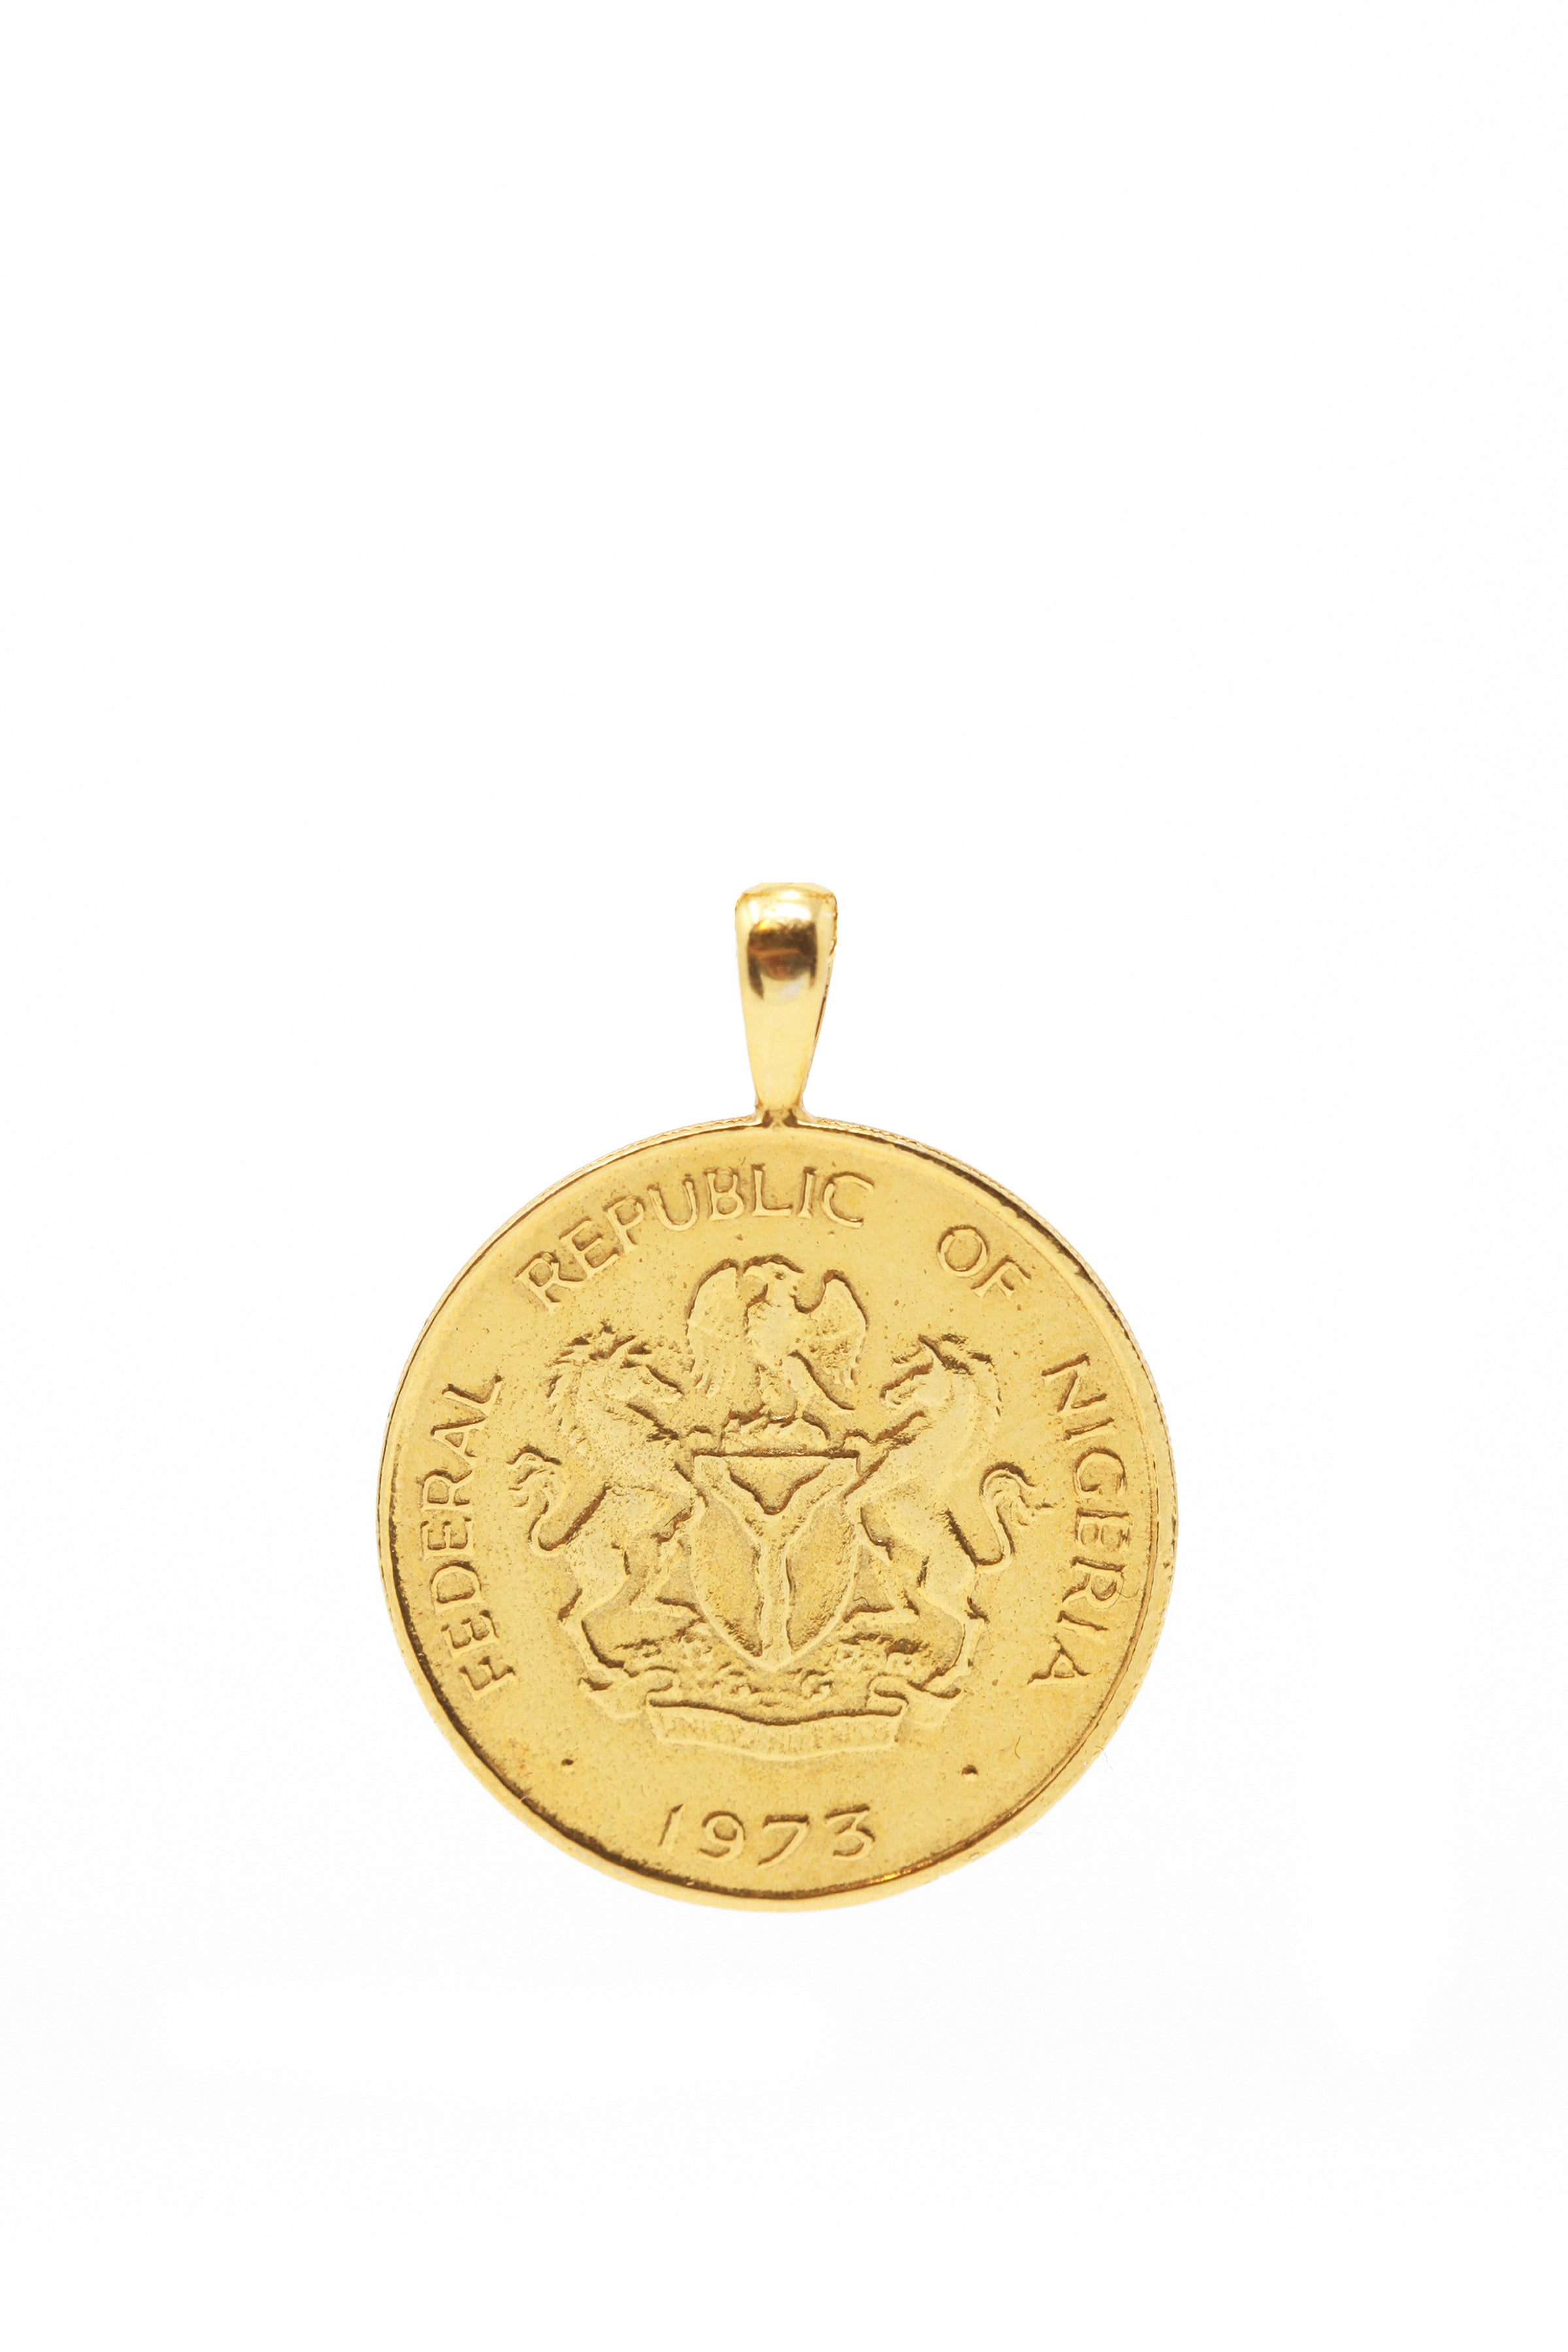 THE TOGGLE IV Necklace with Coin Pendant